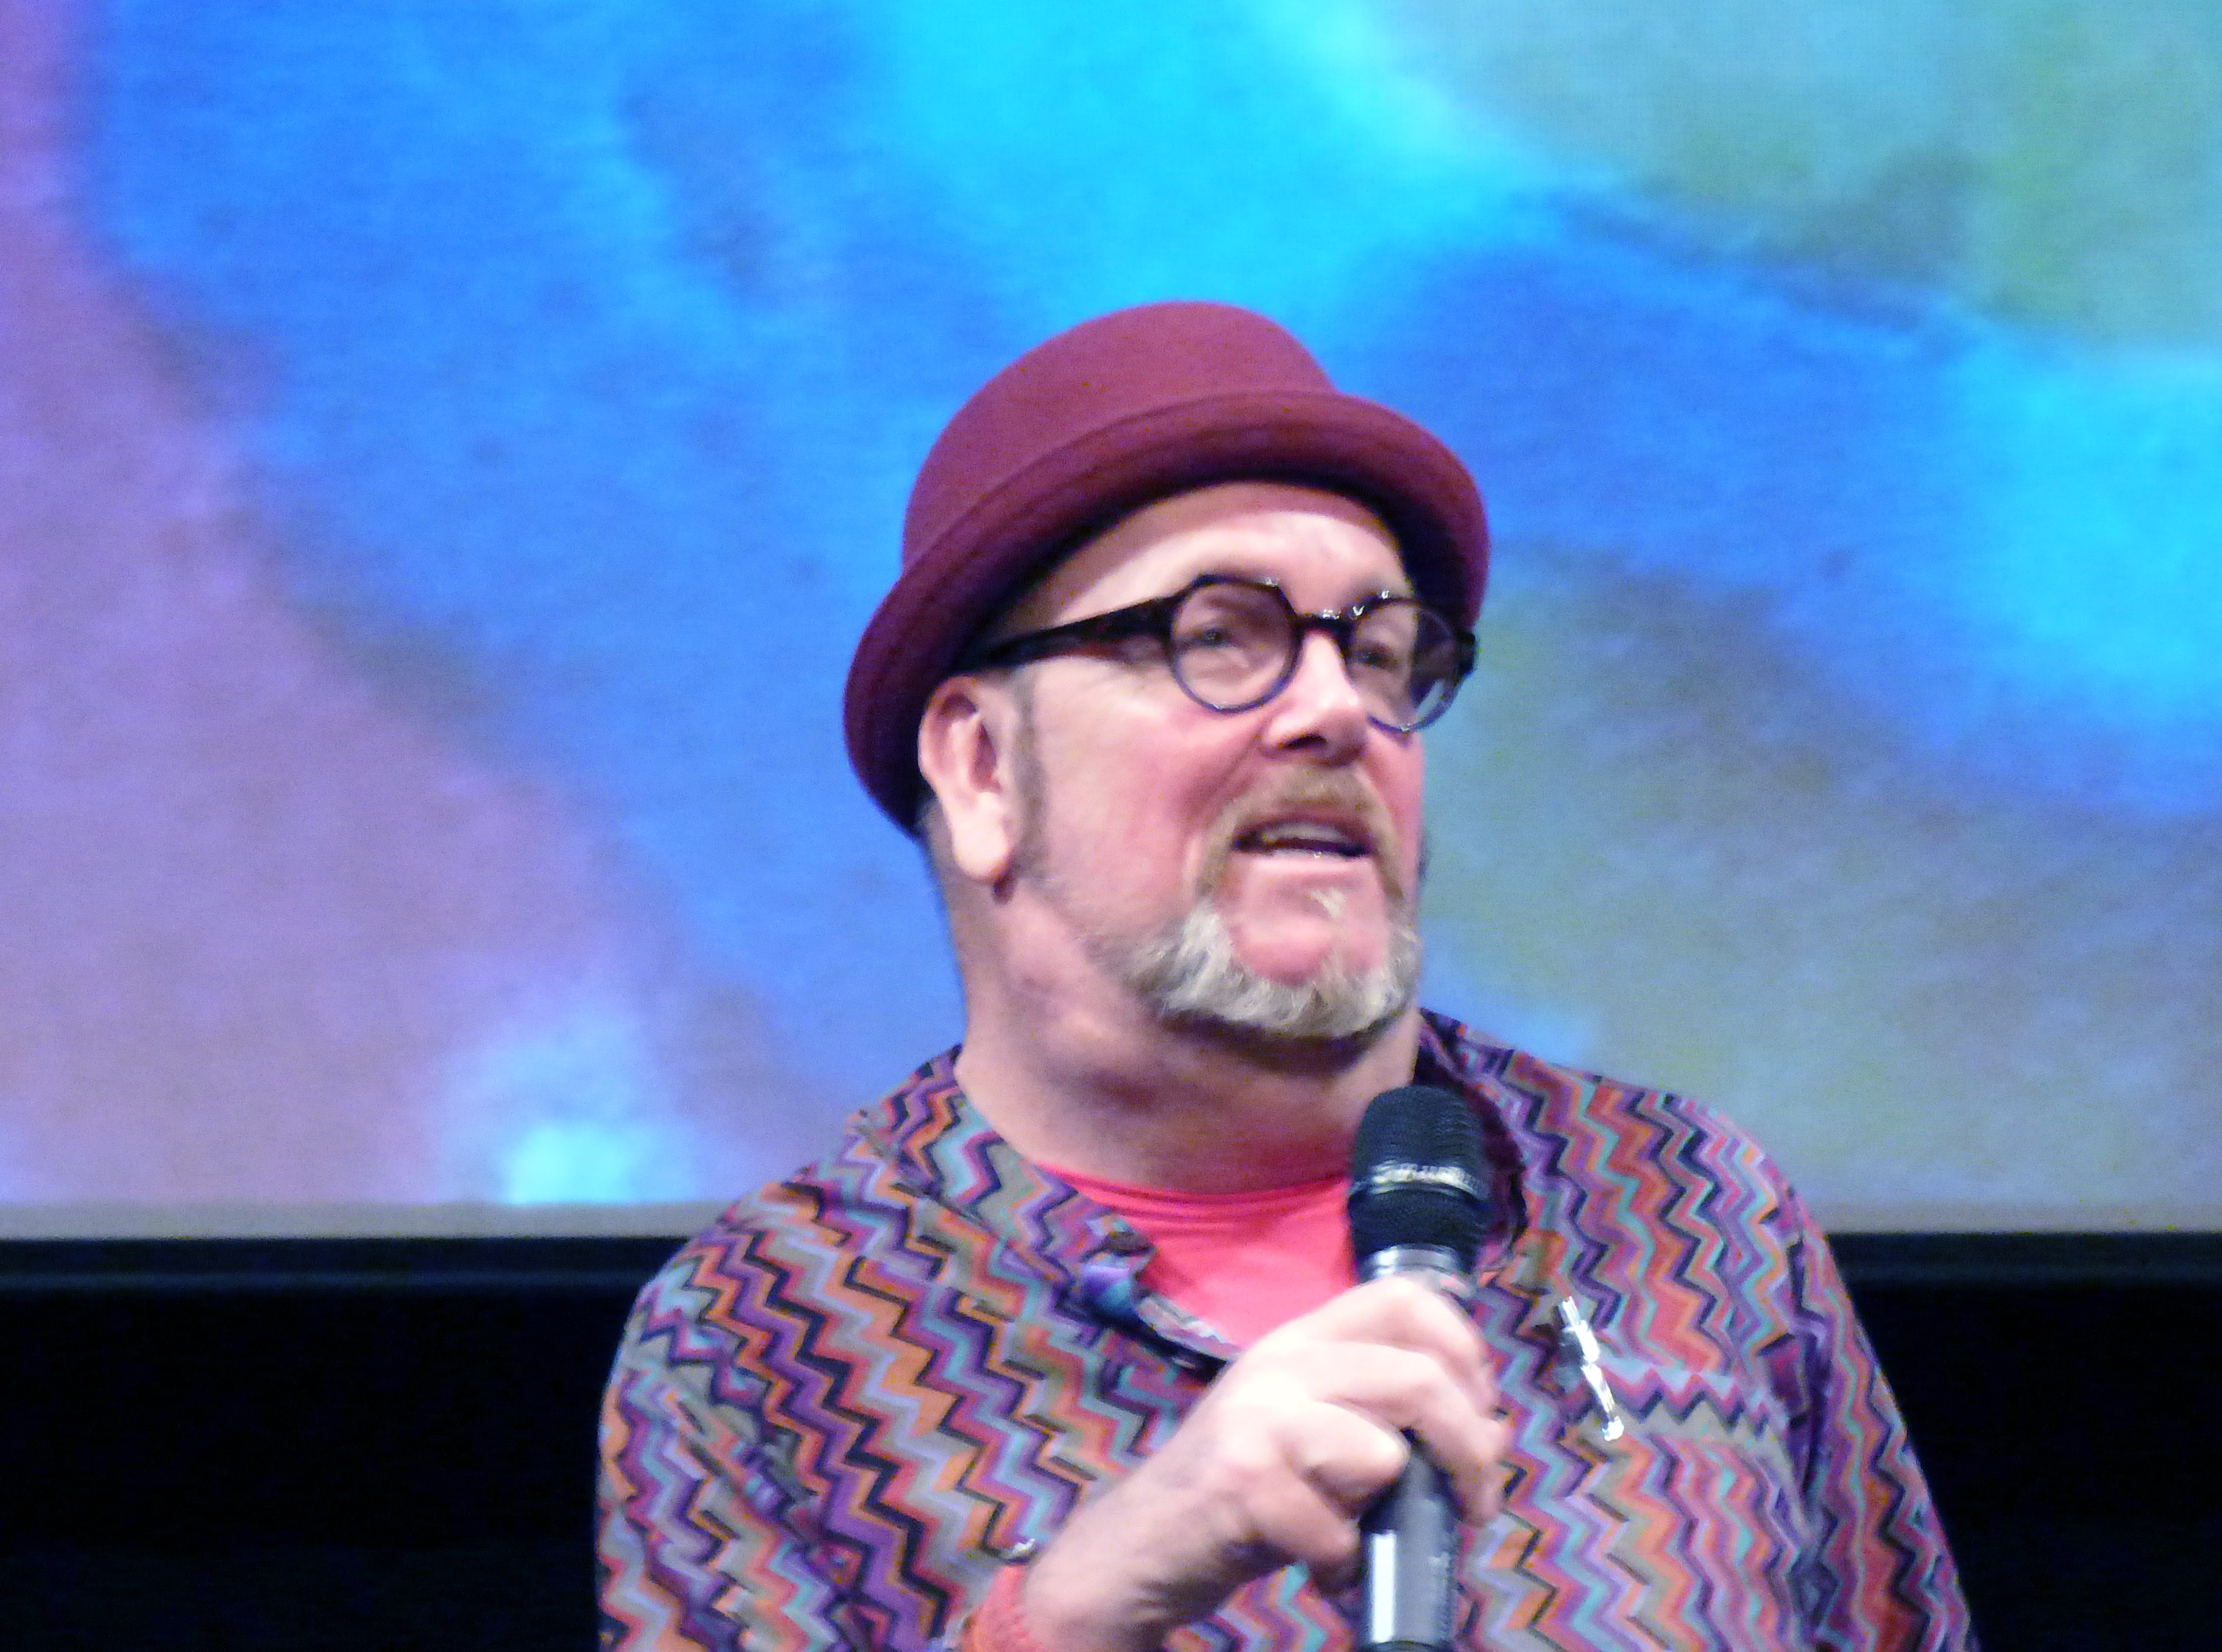 Brandon is telling the audience about Kaffe Fassett at Kaffe Fassett Lecture, Capstone Theatre, Dec 2016